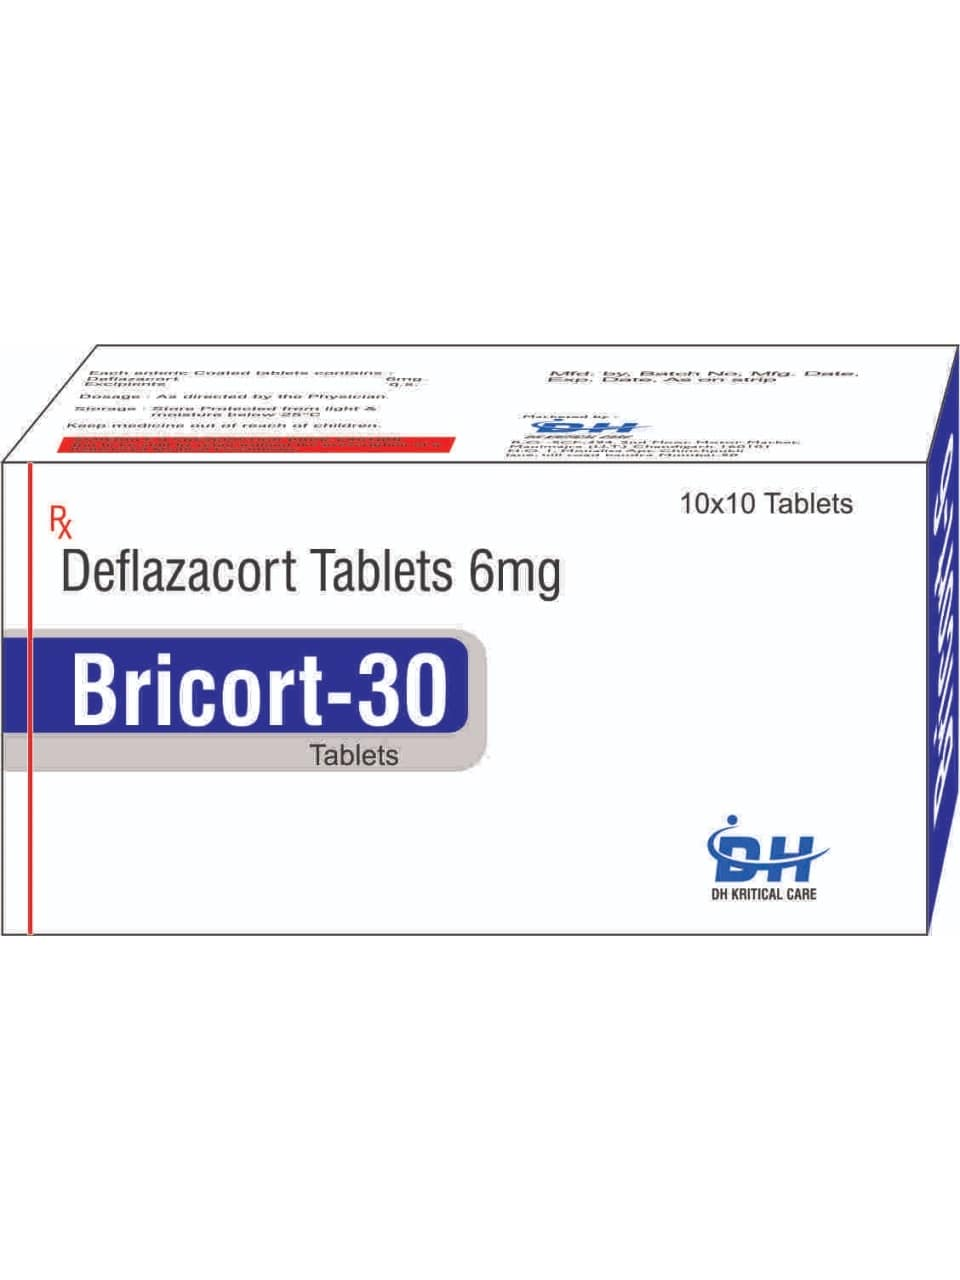 27-Bricort-30-Tablets-Deflazacort-Tablets-6mg-DH-Kritical-Care-Best-PCD-Pharma-Franchise-Company-Chandigarh